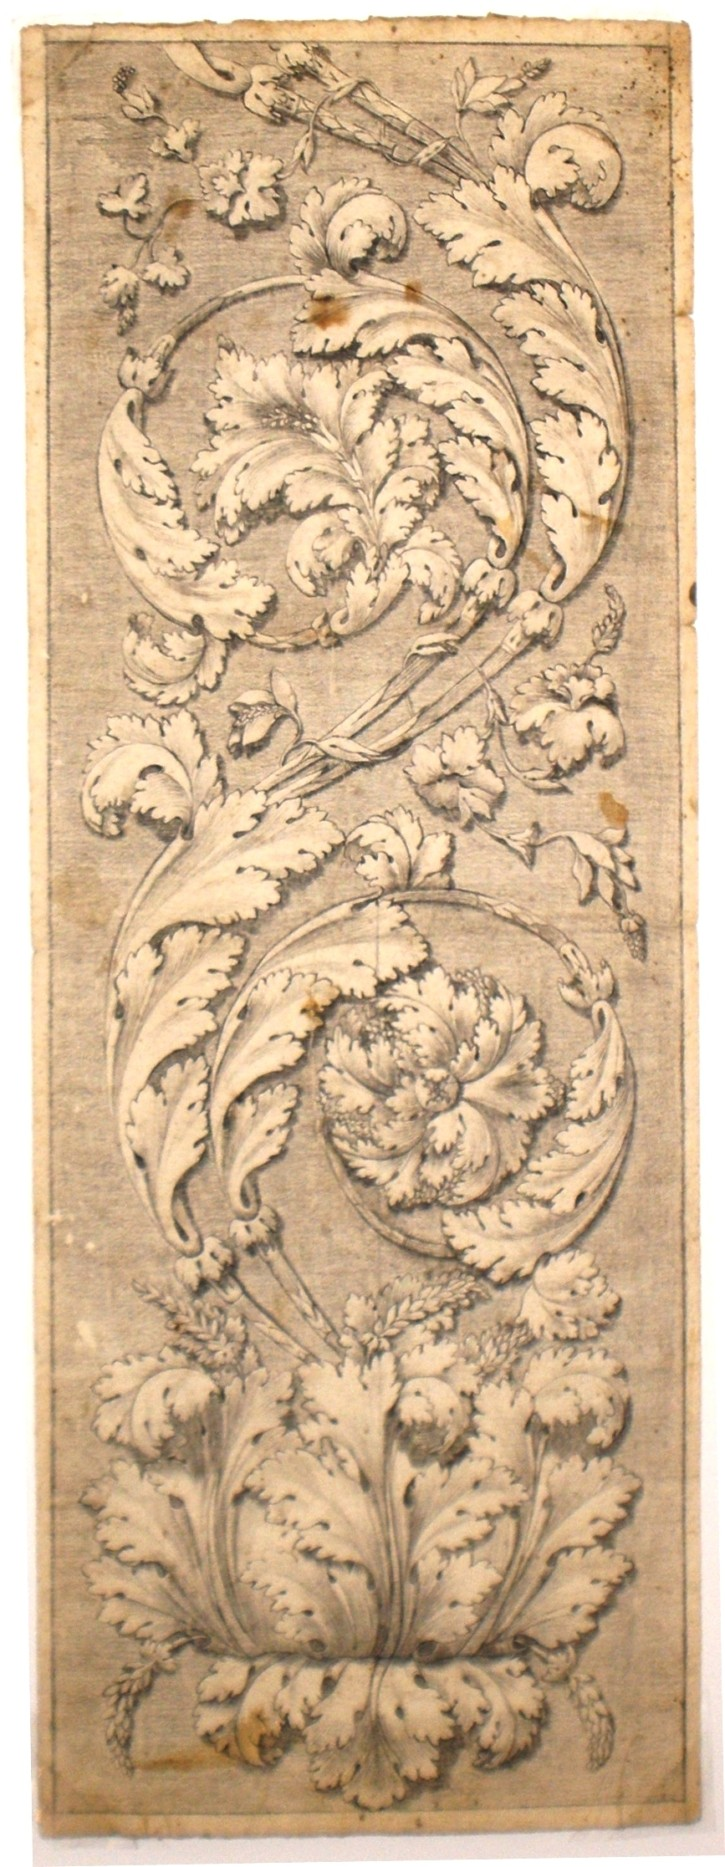 Acanthus leaves (Anónimo) -  - [Botany and Natural History, Spain, XVIII, Pencil and ink, Laid paper]